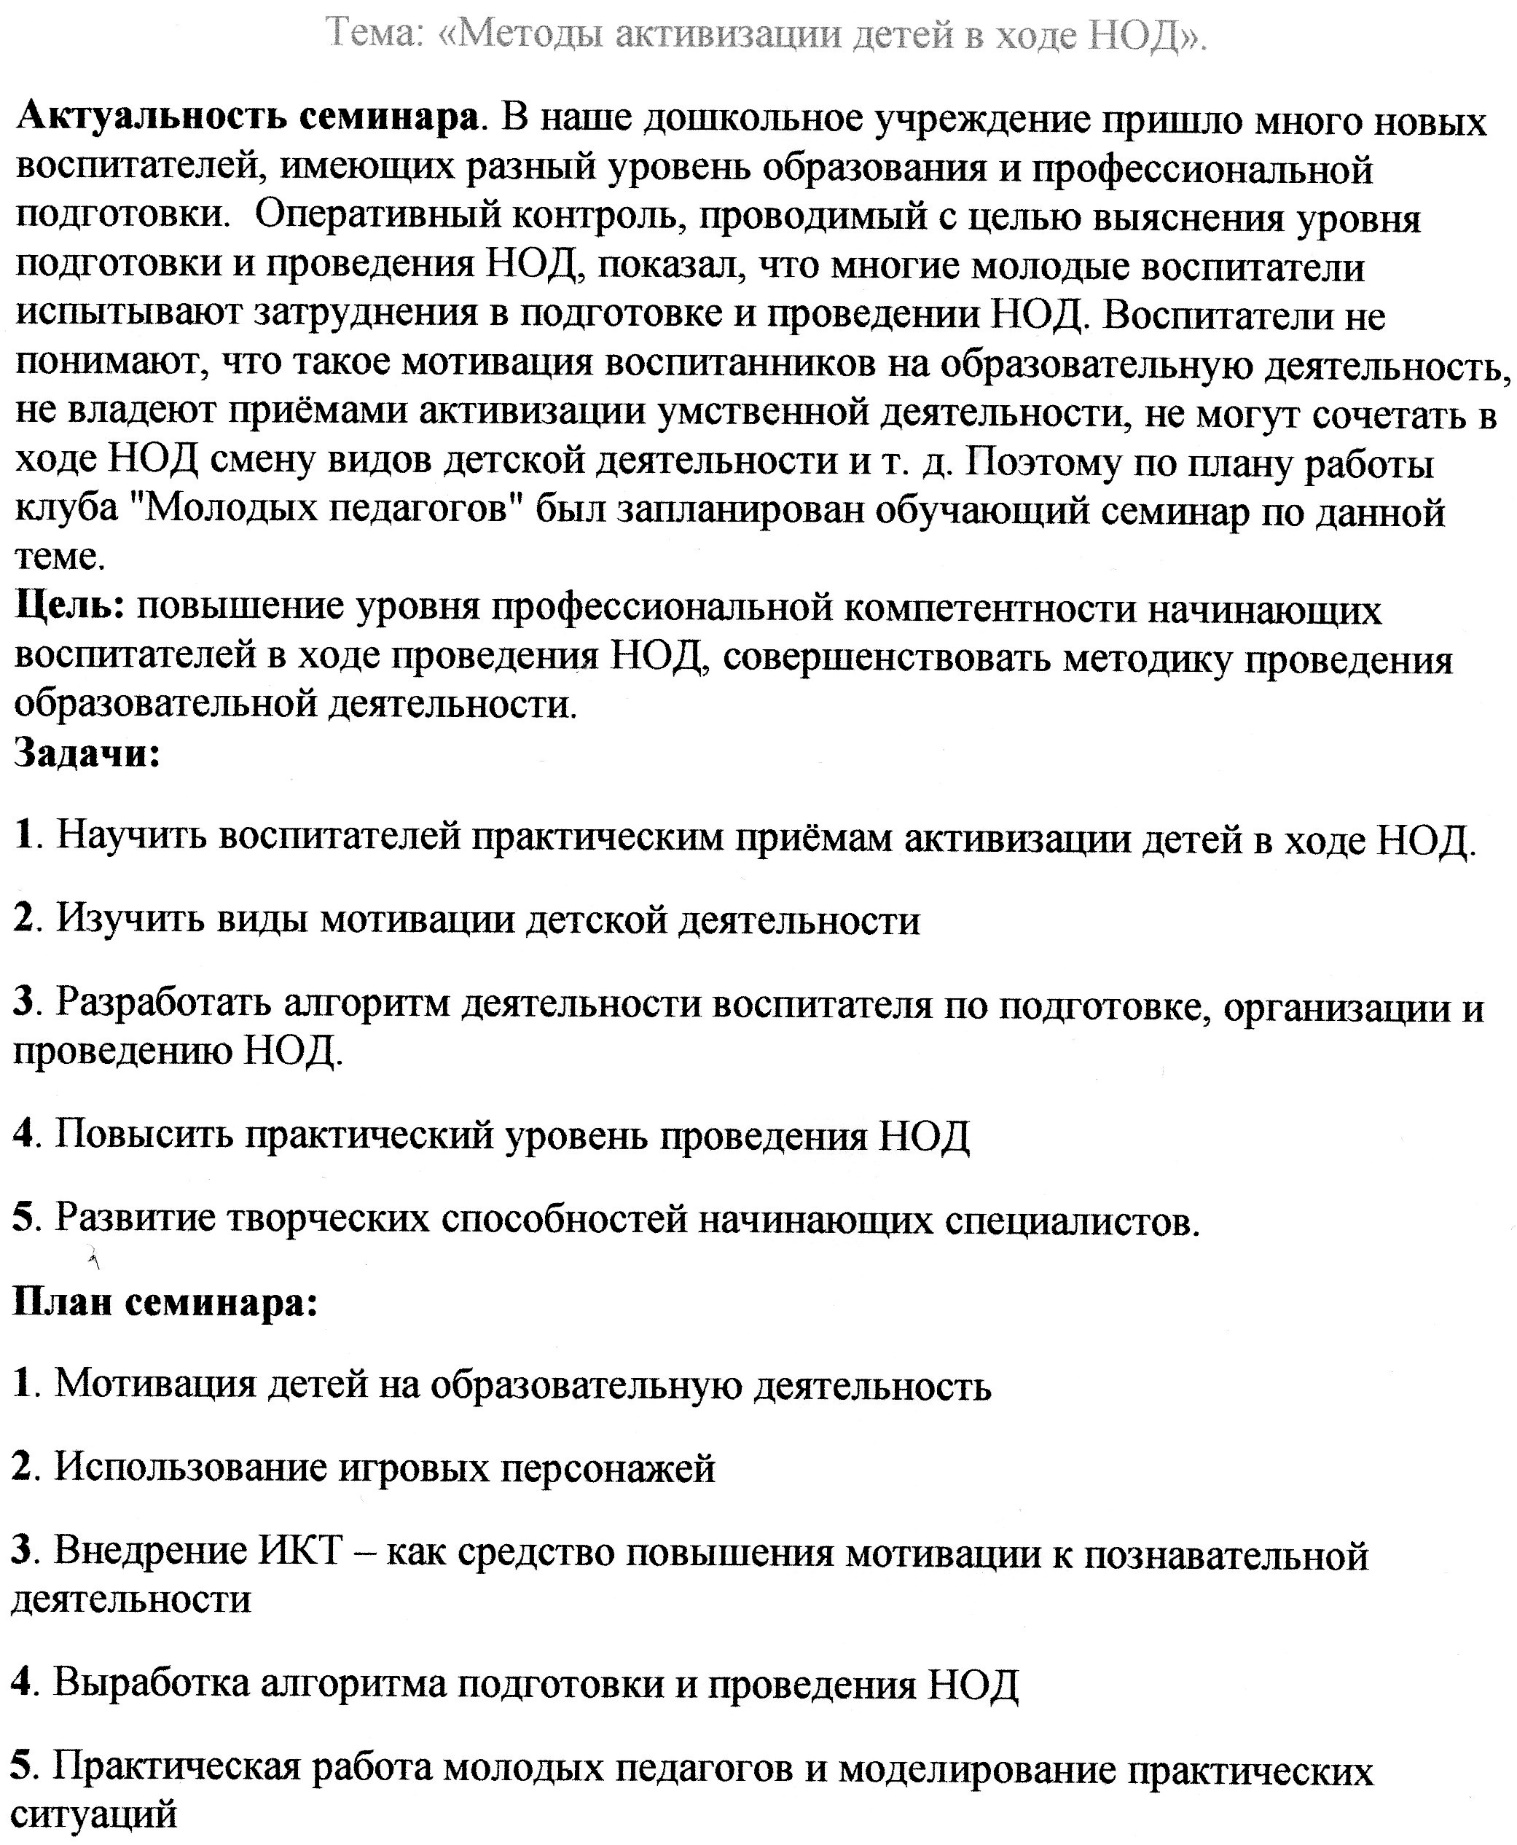 C:\Users\Василий\Pictures\img027.jpg